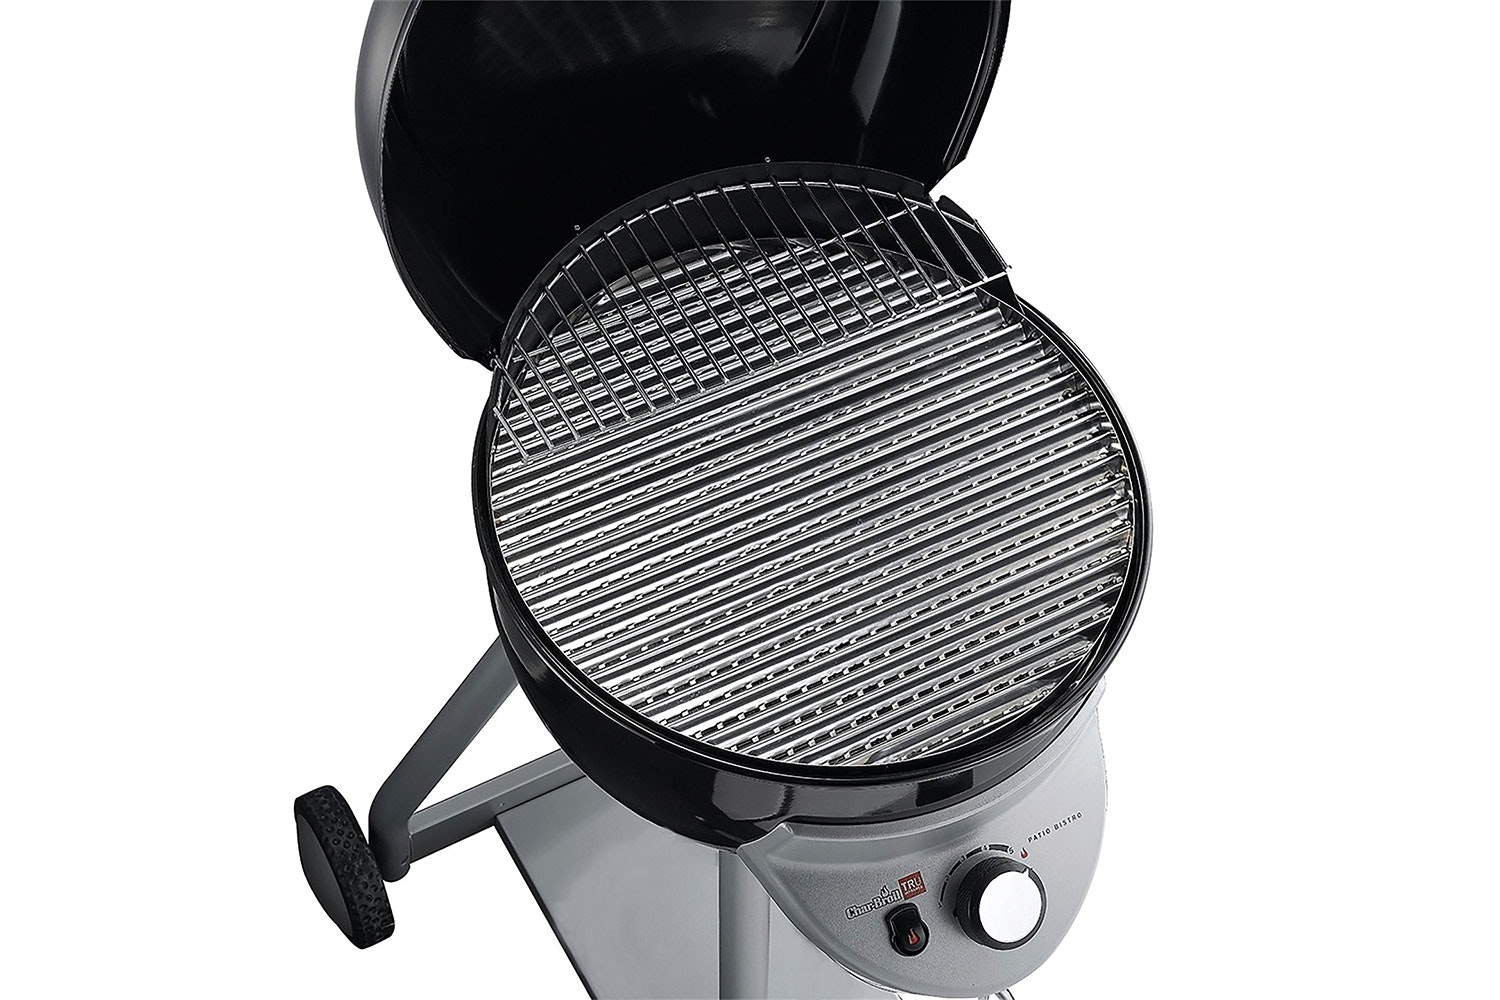 CharBroil Patio Bistro 240 Barbeque by Gasmate